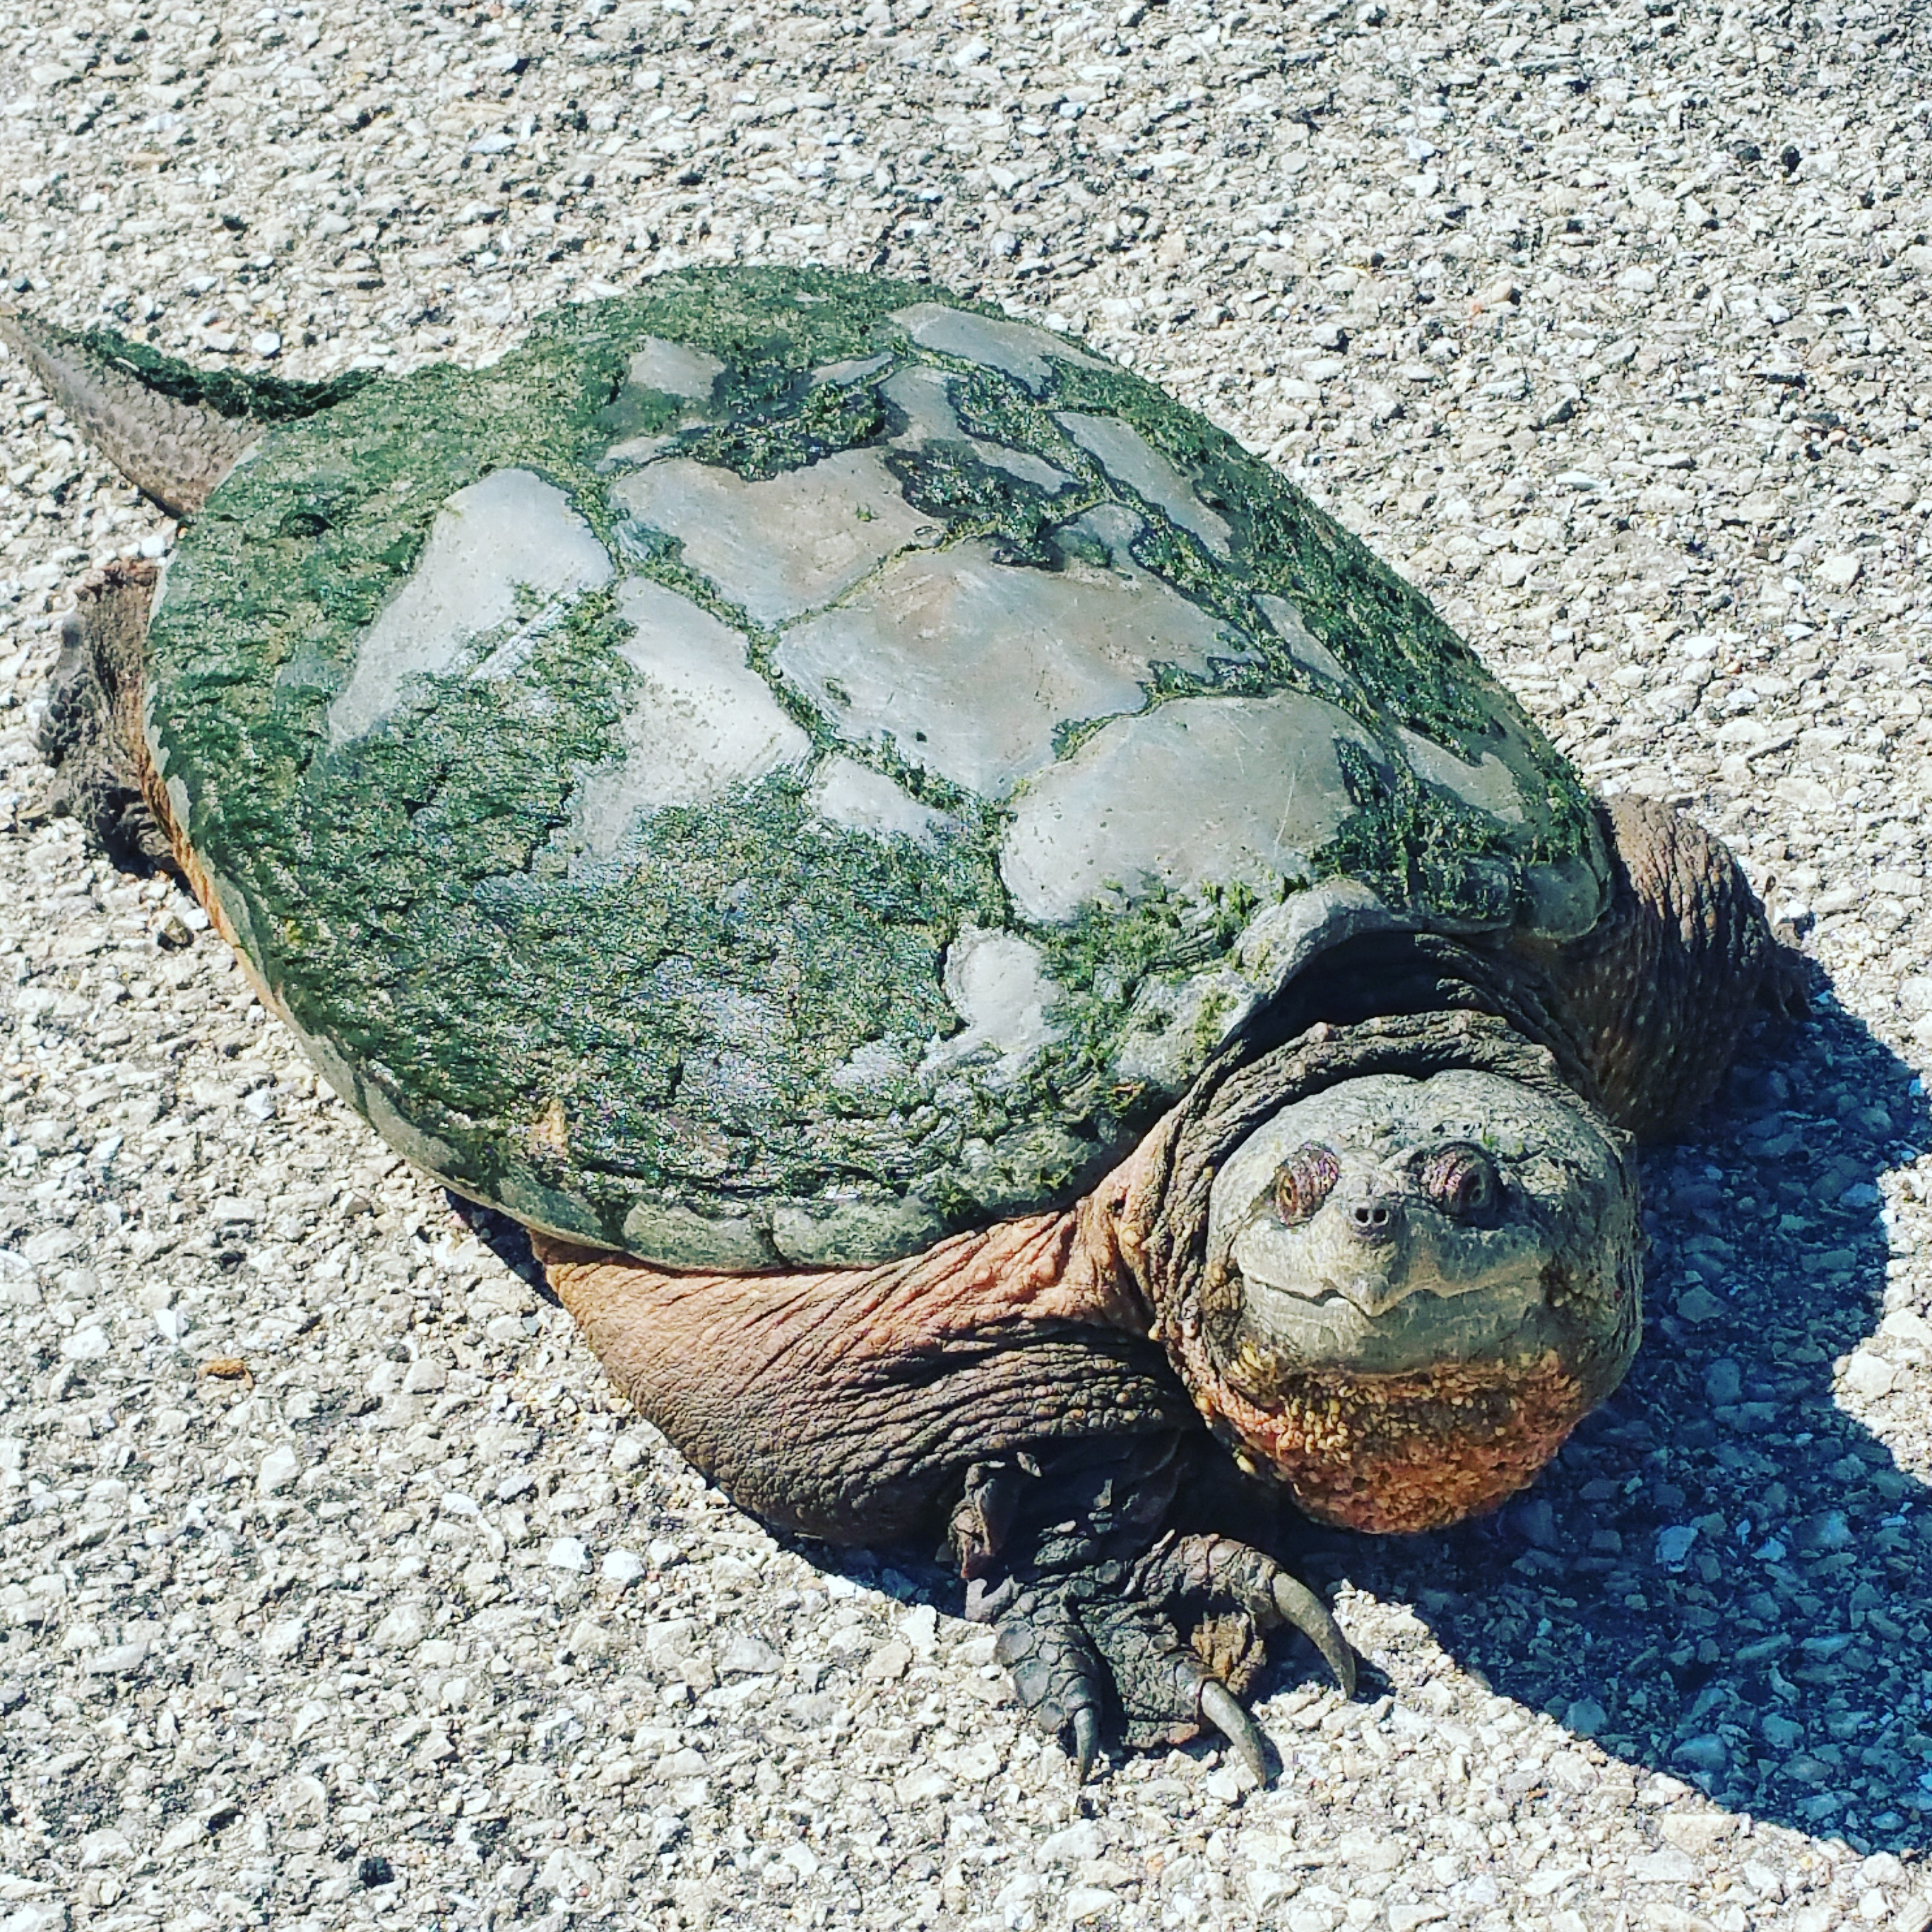 This turtle was spotted in the parking lot of the Lederman Science Center on April 15. Photo: Bridget Scerini, ESH&Q